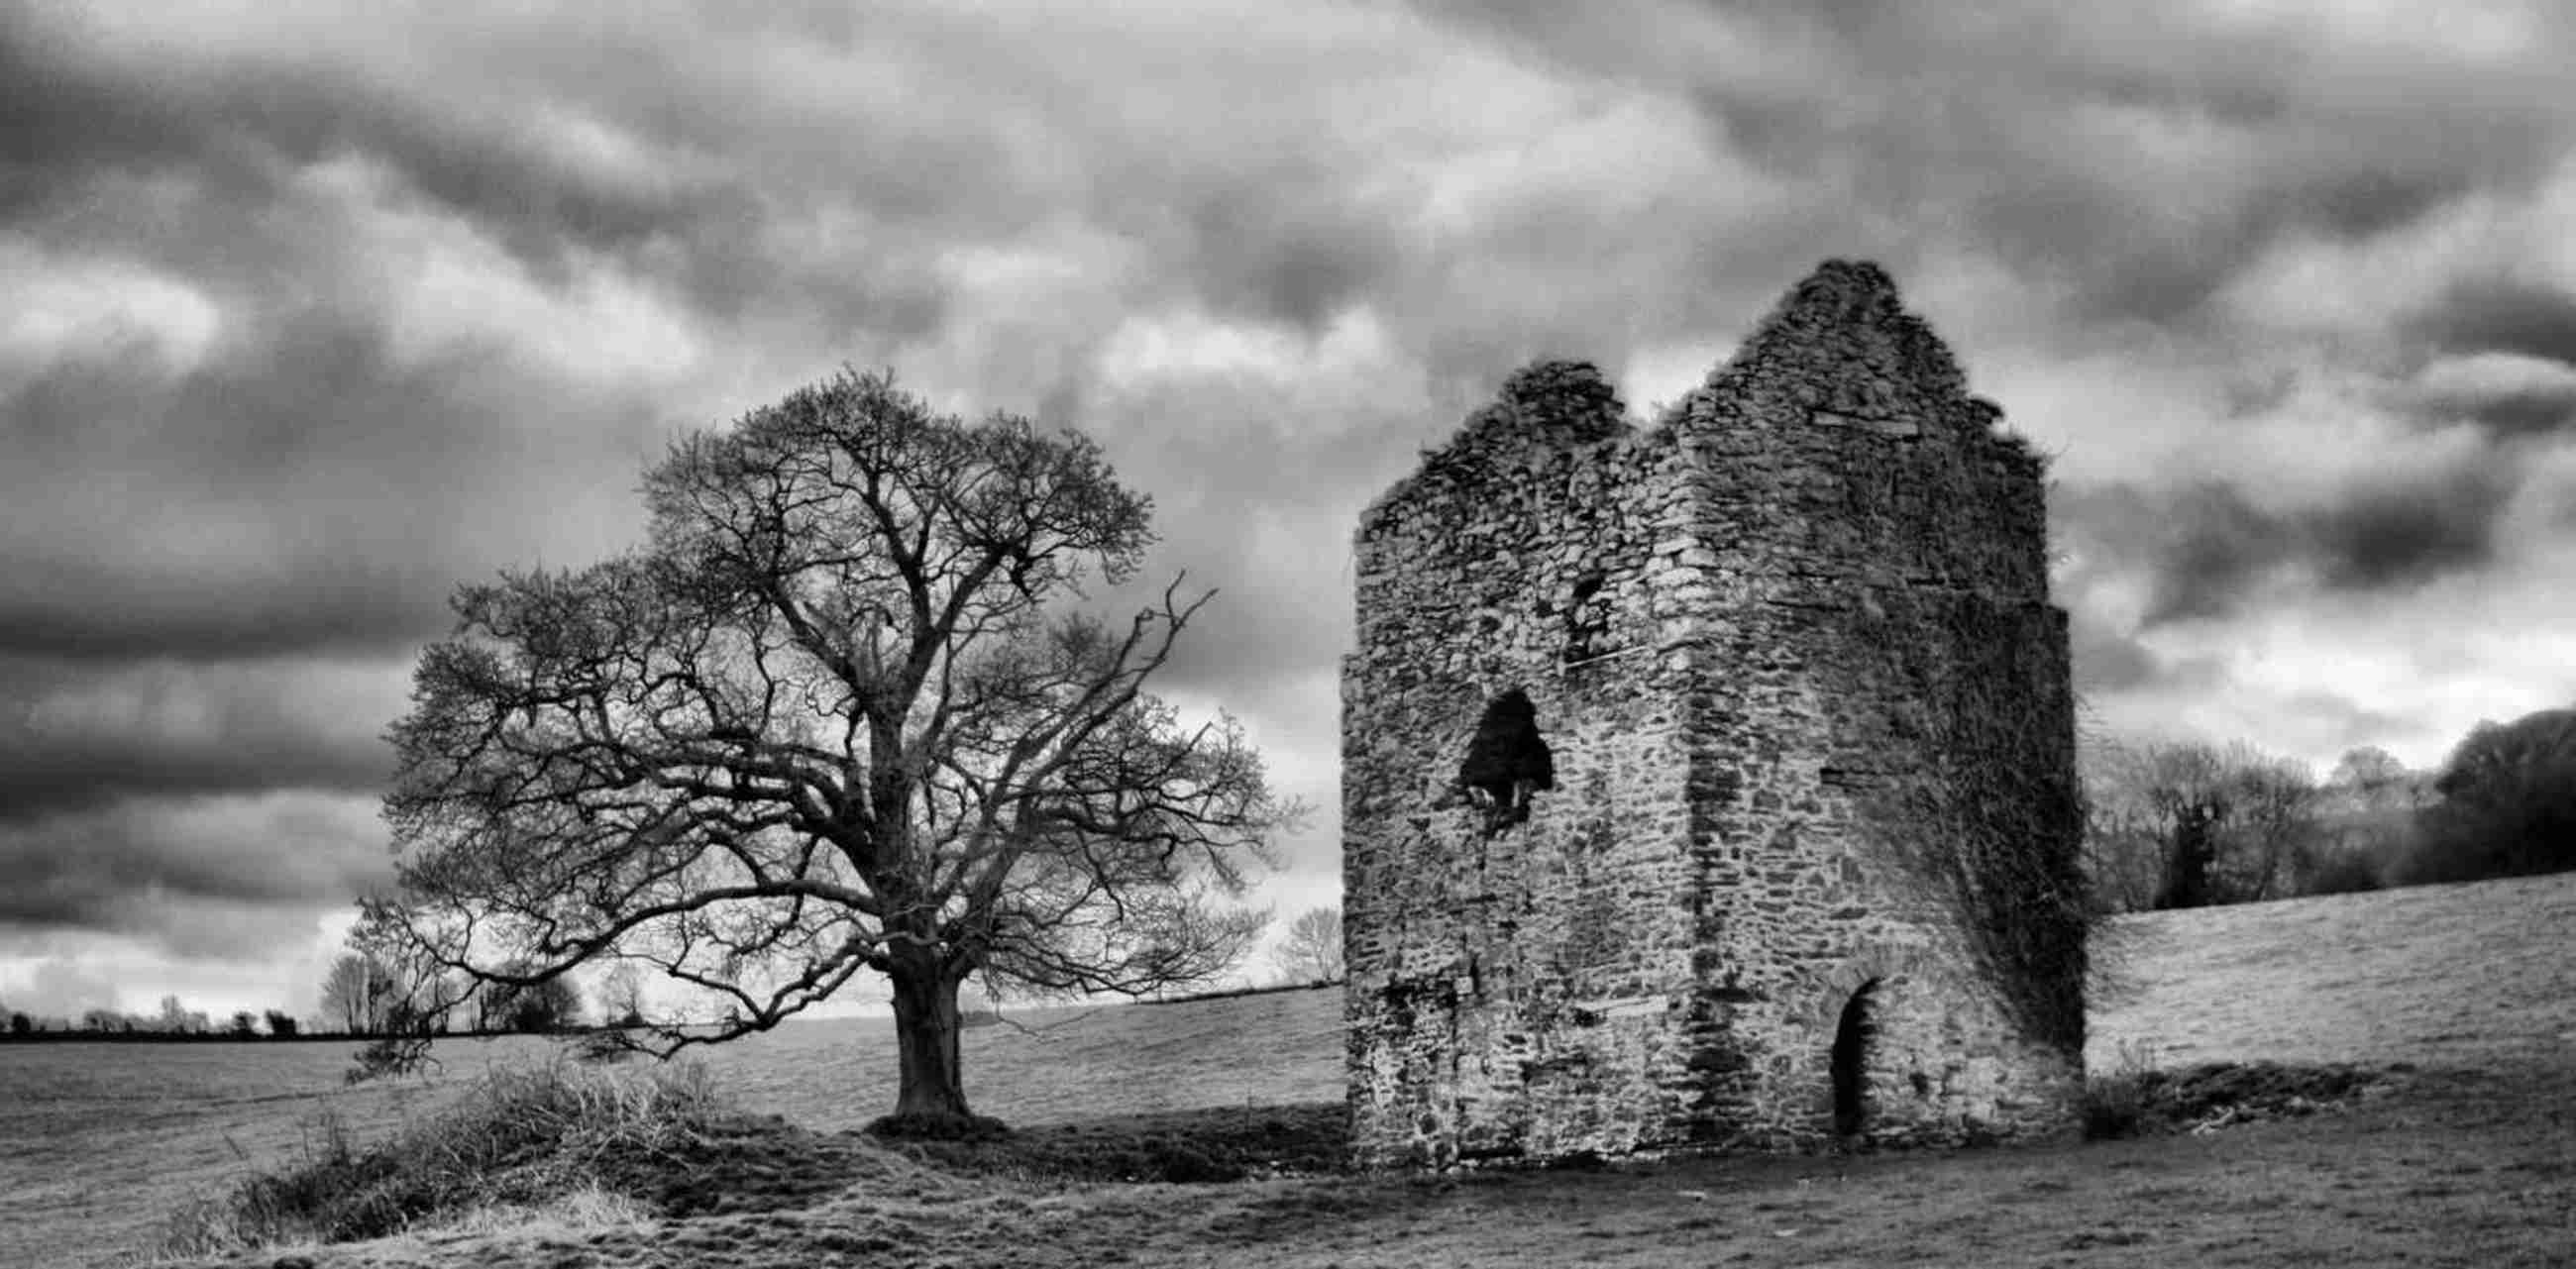 B&W photo of a derelict copper mine building in Somerset, England